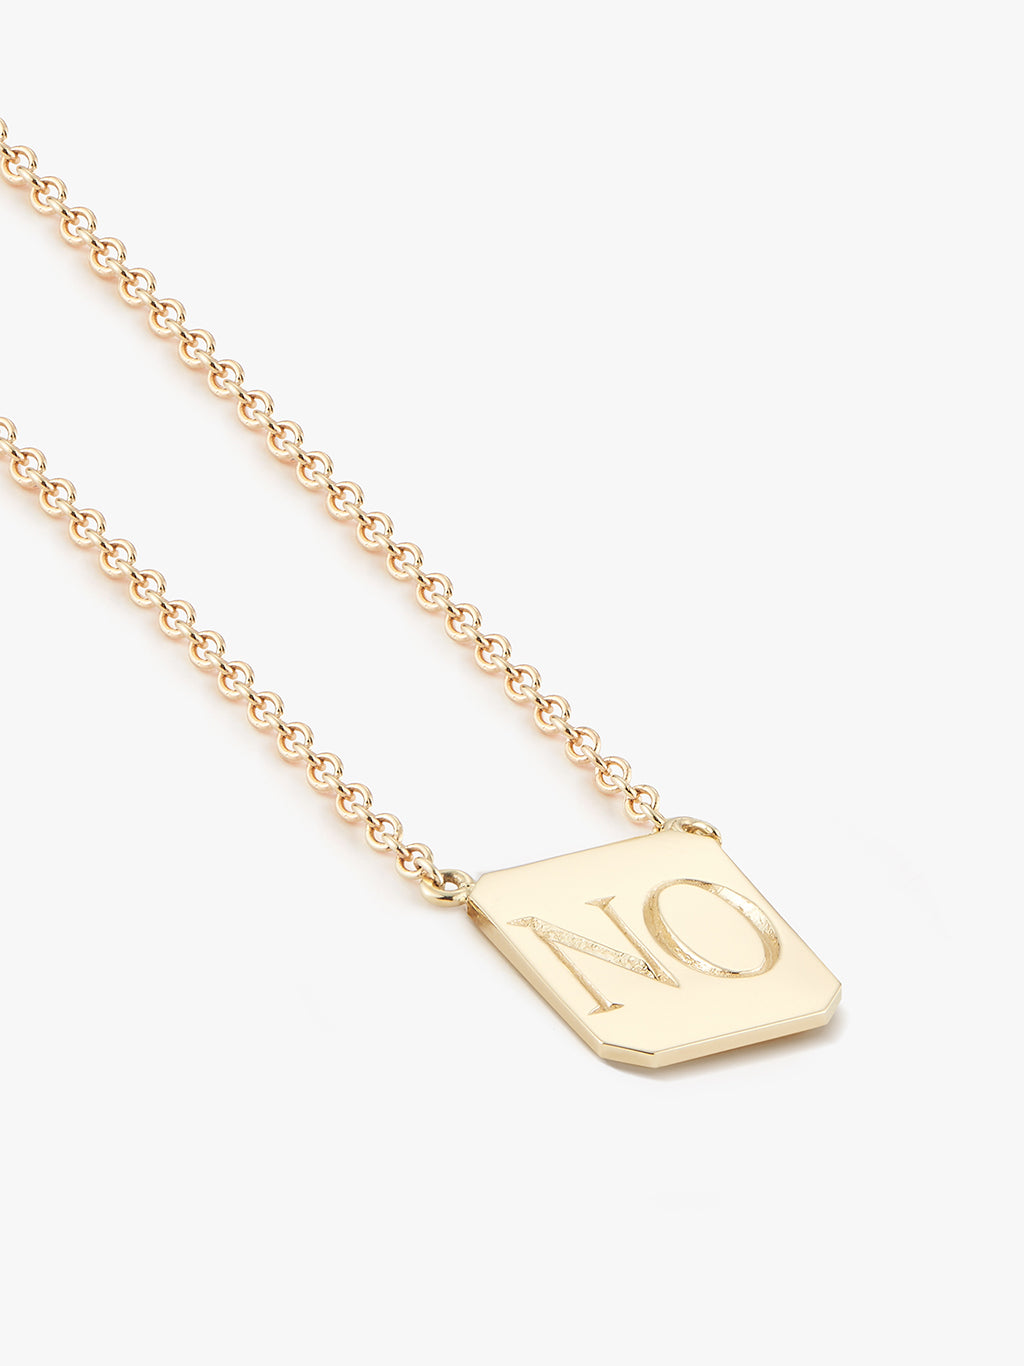 SI•NO Edition Gold Tag Necklace